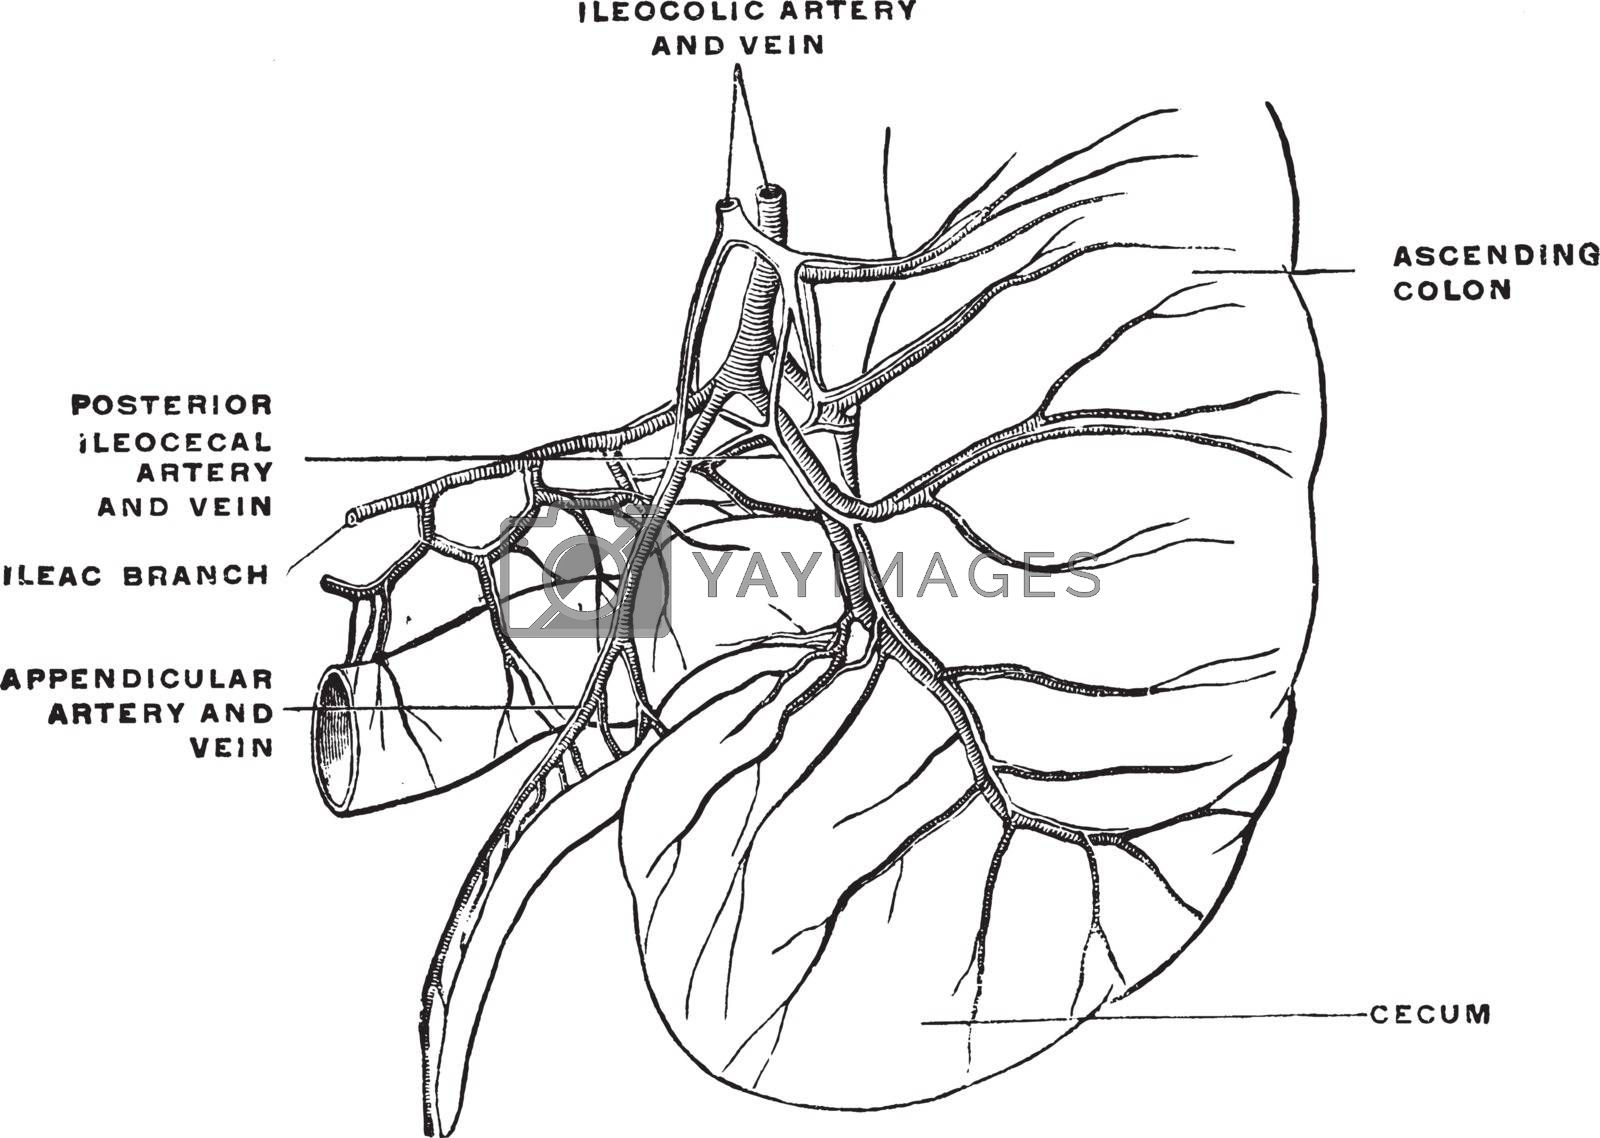 Arteries and Veins of the Cecum and Appendix, vintage illustrati by Morphart